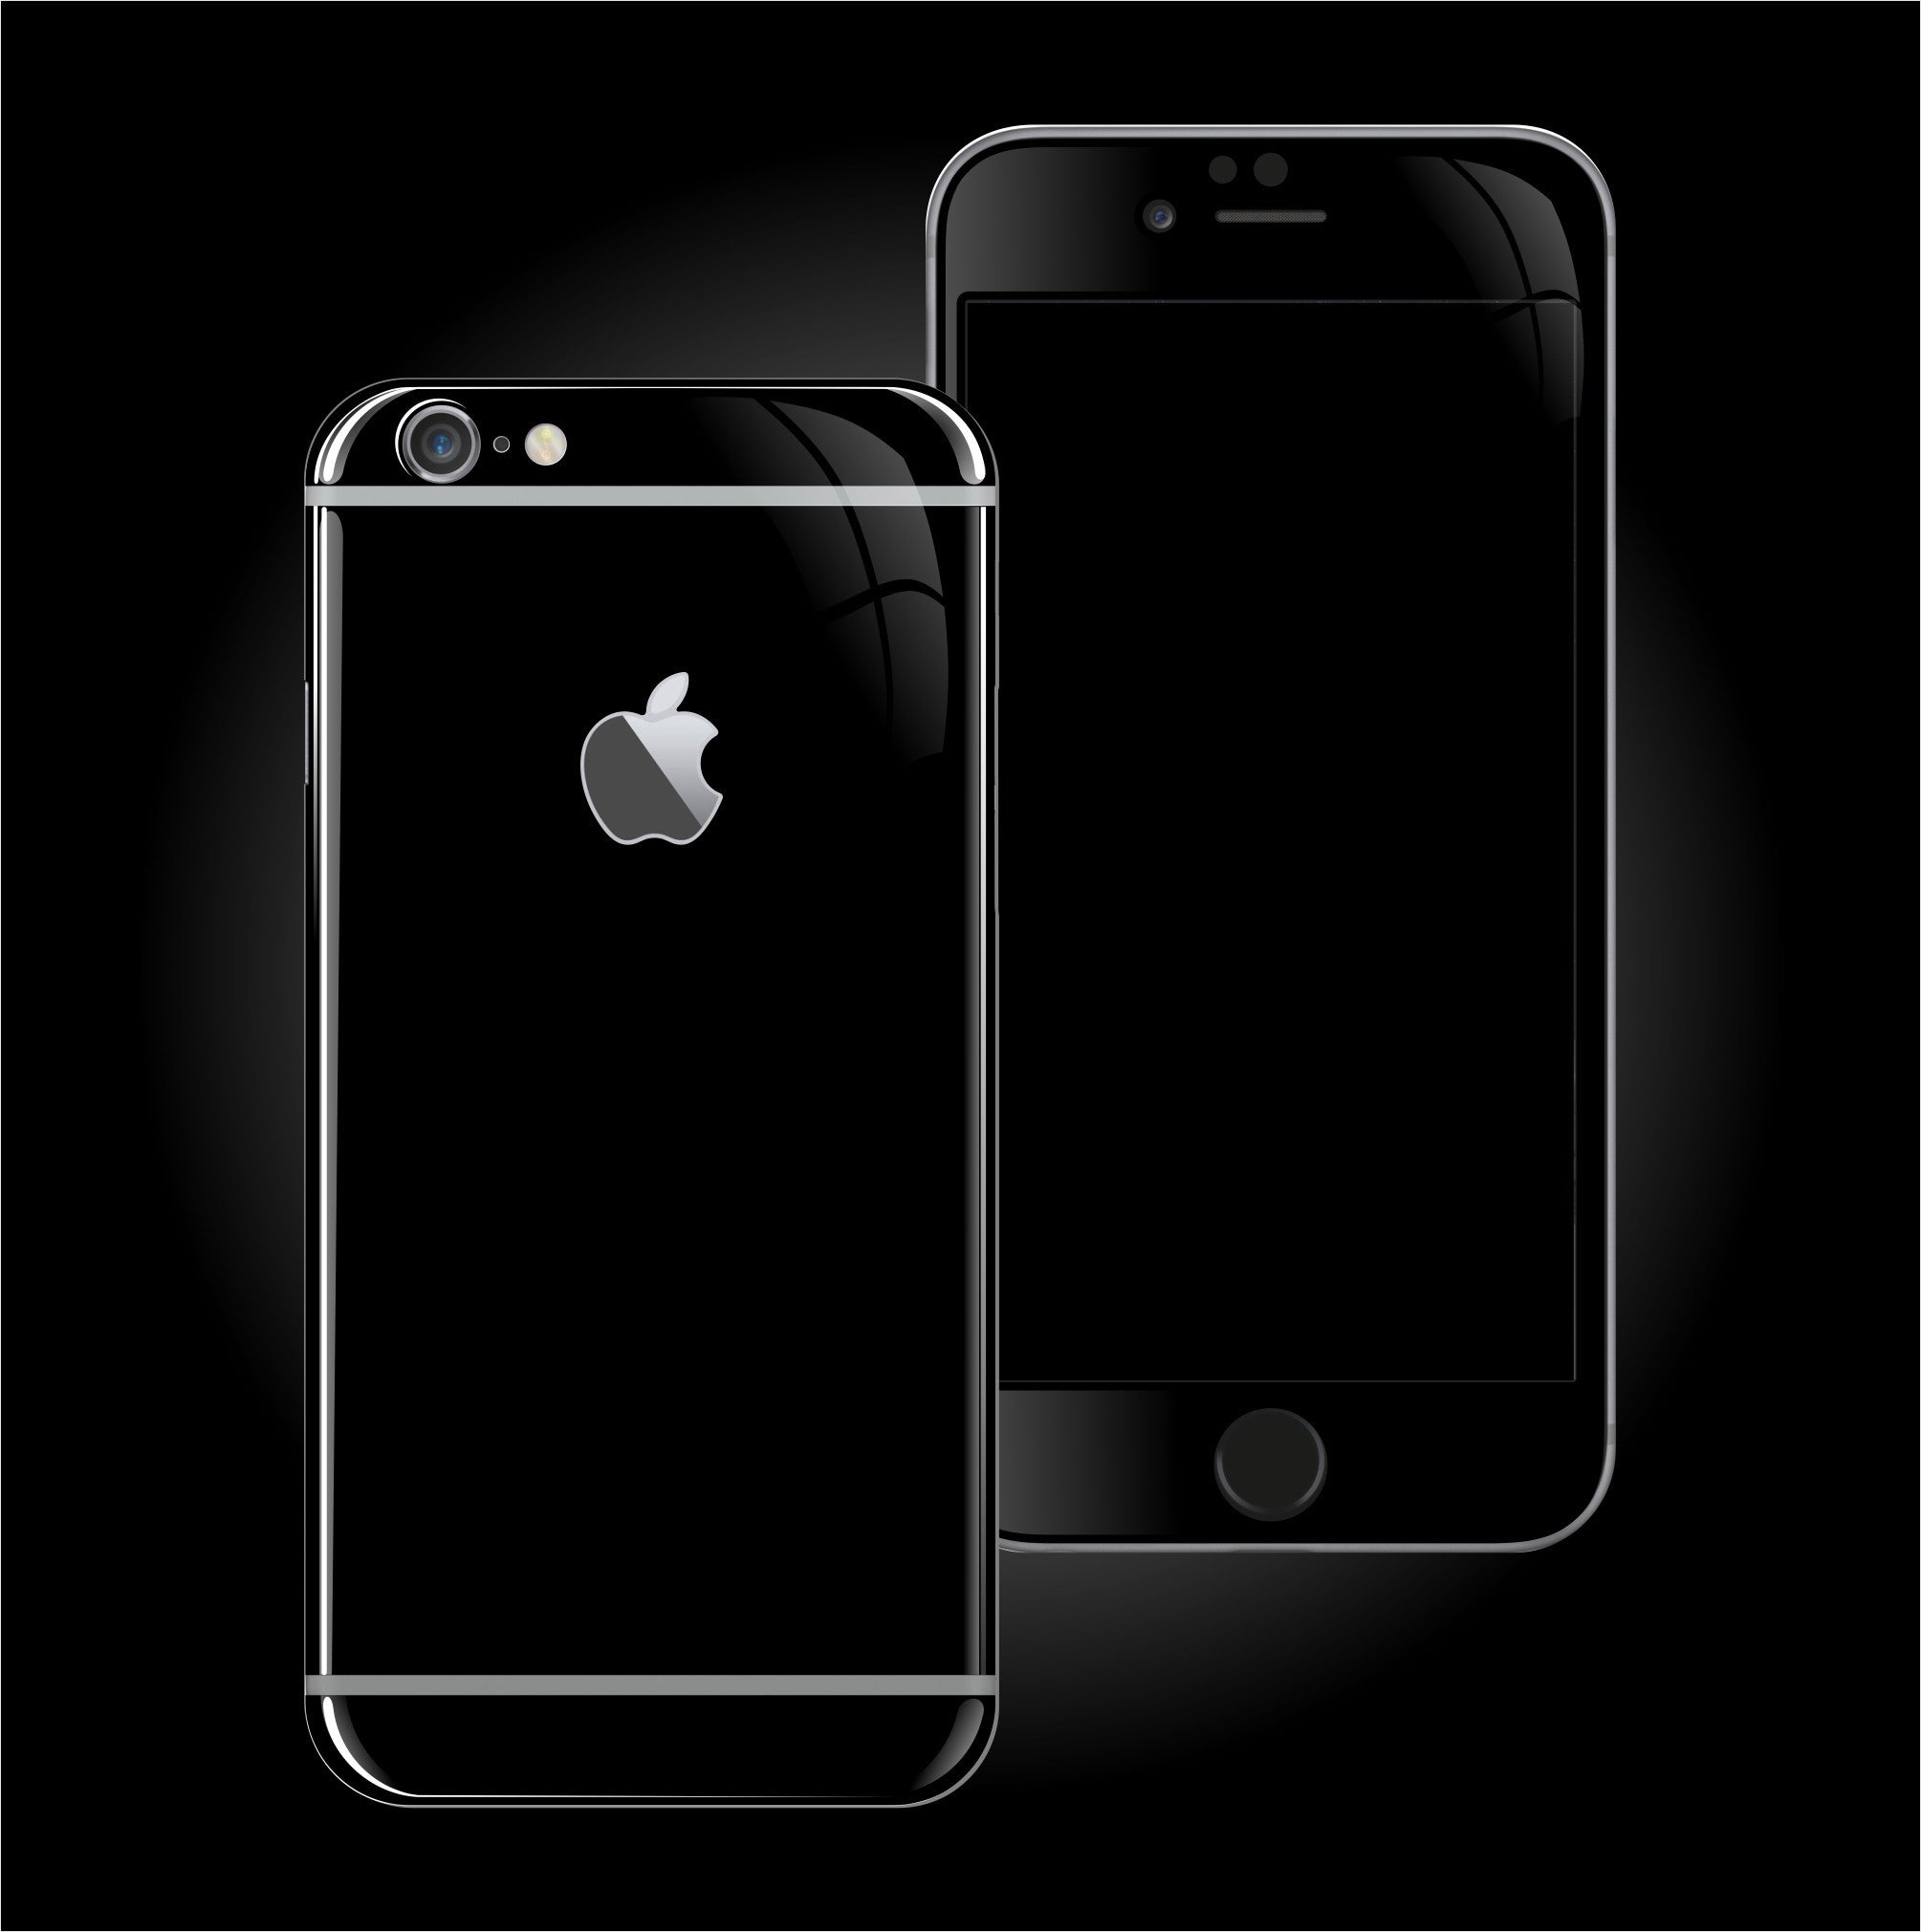 iPhone 6 PLUS JET BLACK High Gloss Skin Wrap Decal Protector | EasySkinz